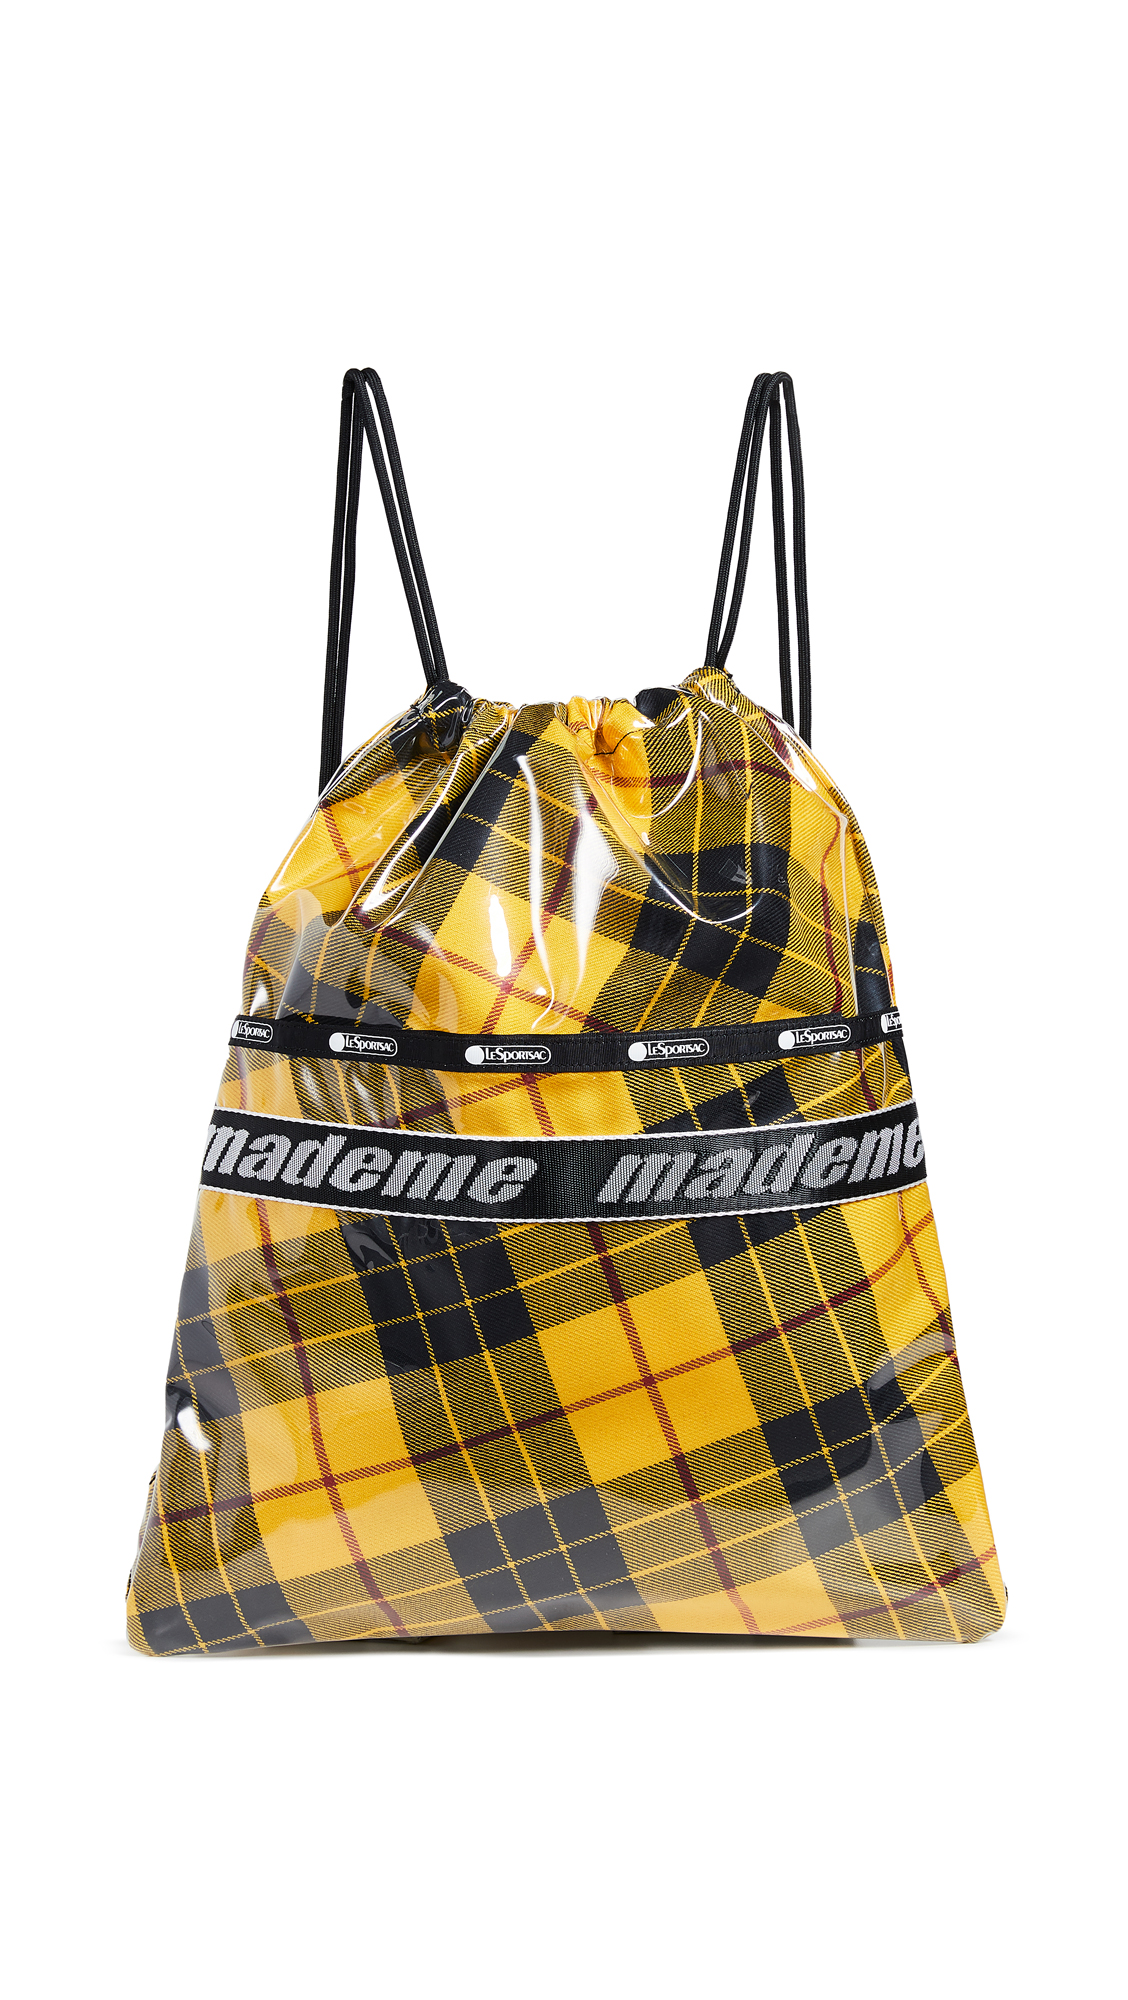 LESPORTSAC X Mademe Drawstring Backpack in Yellow Plaid